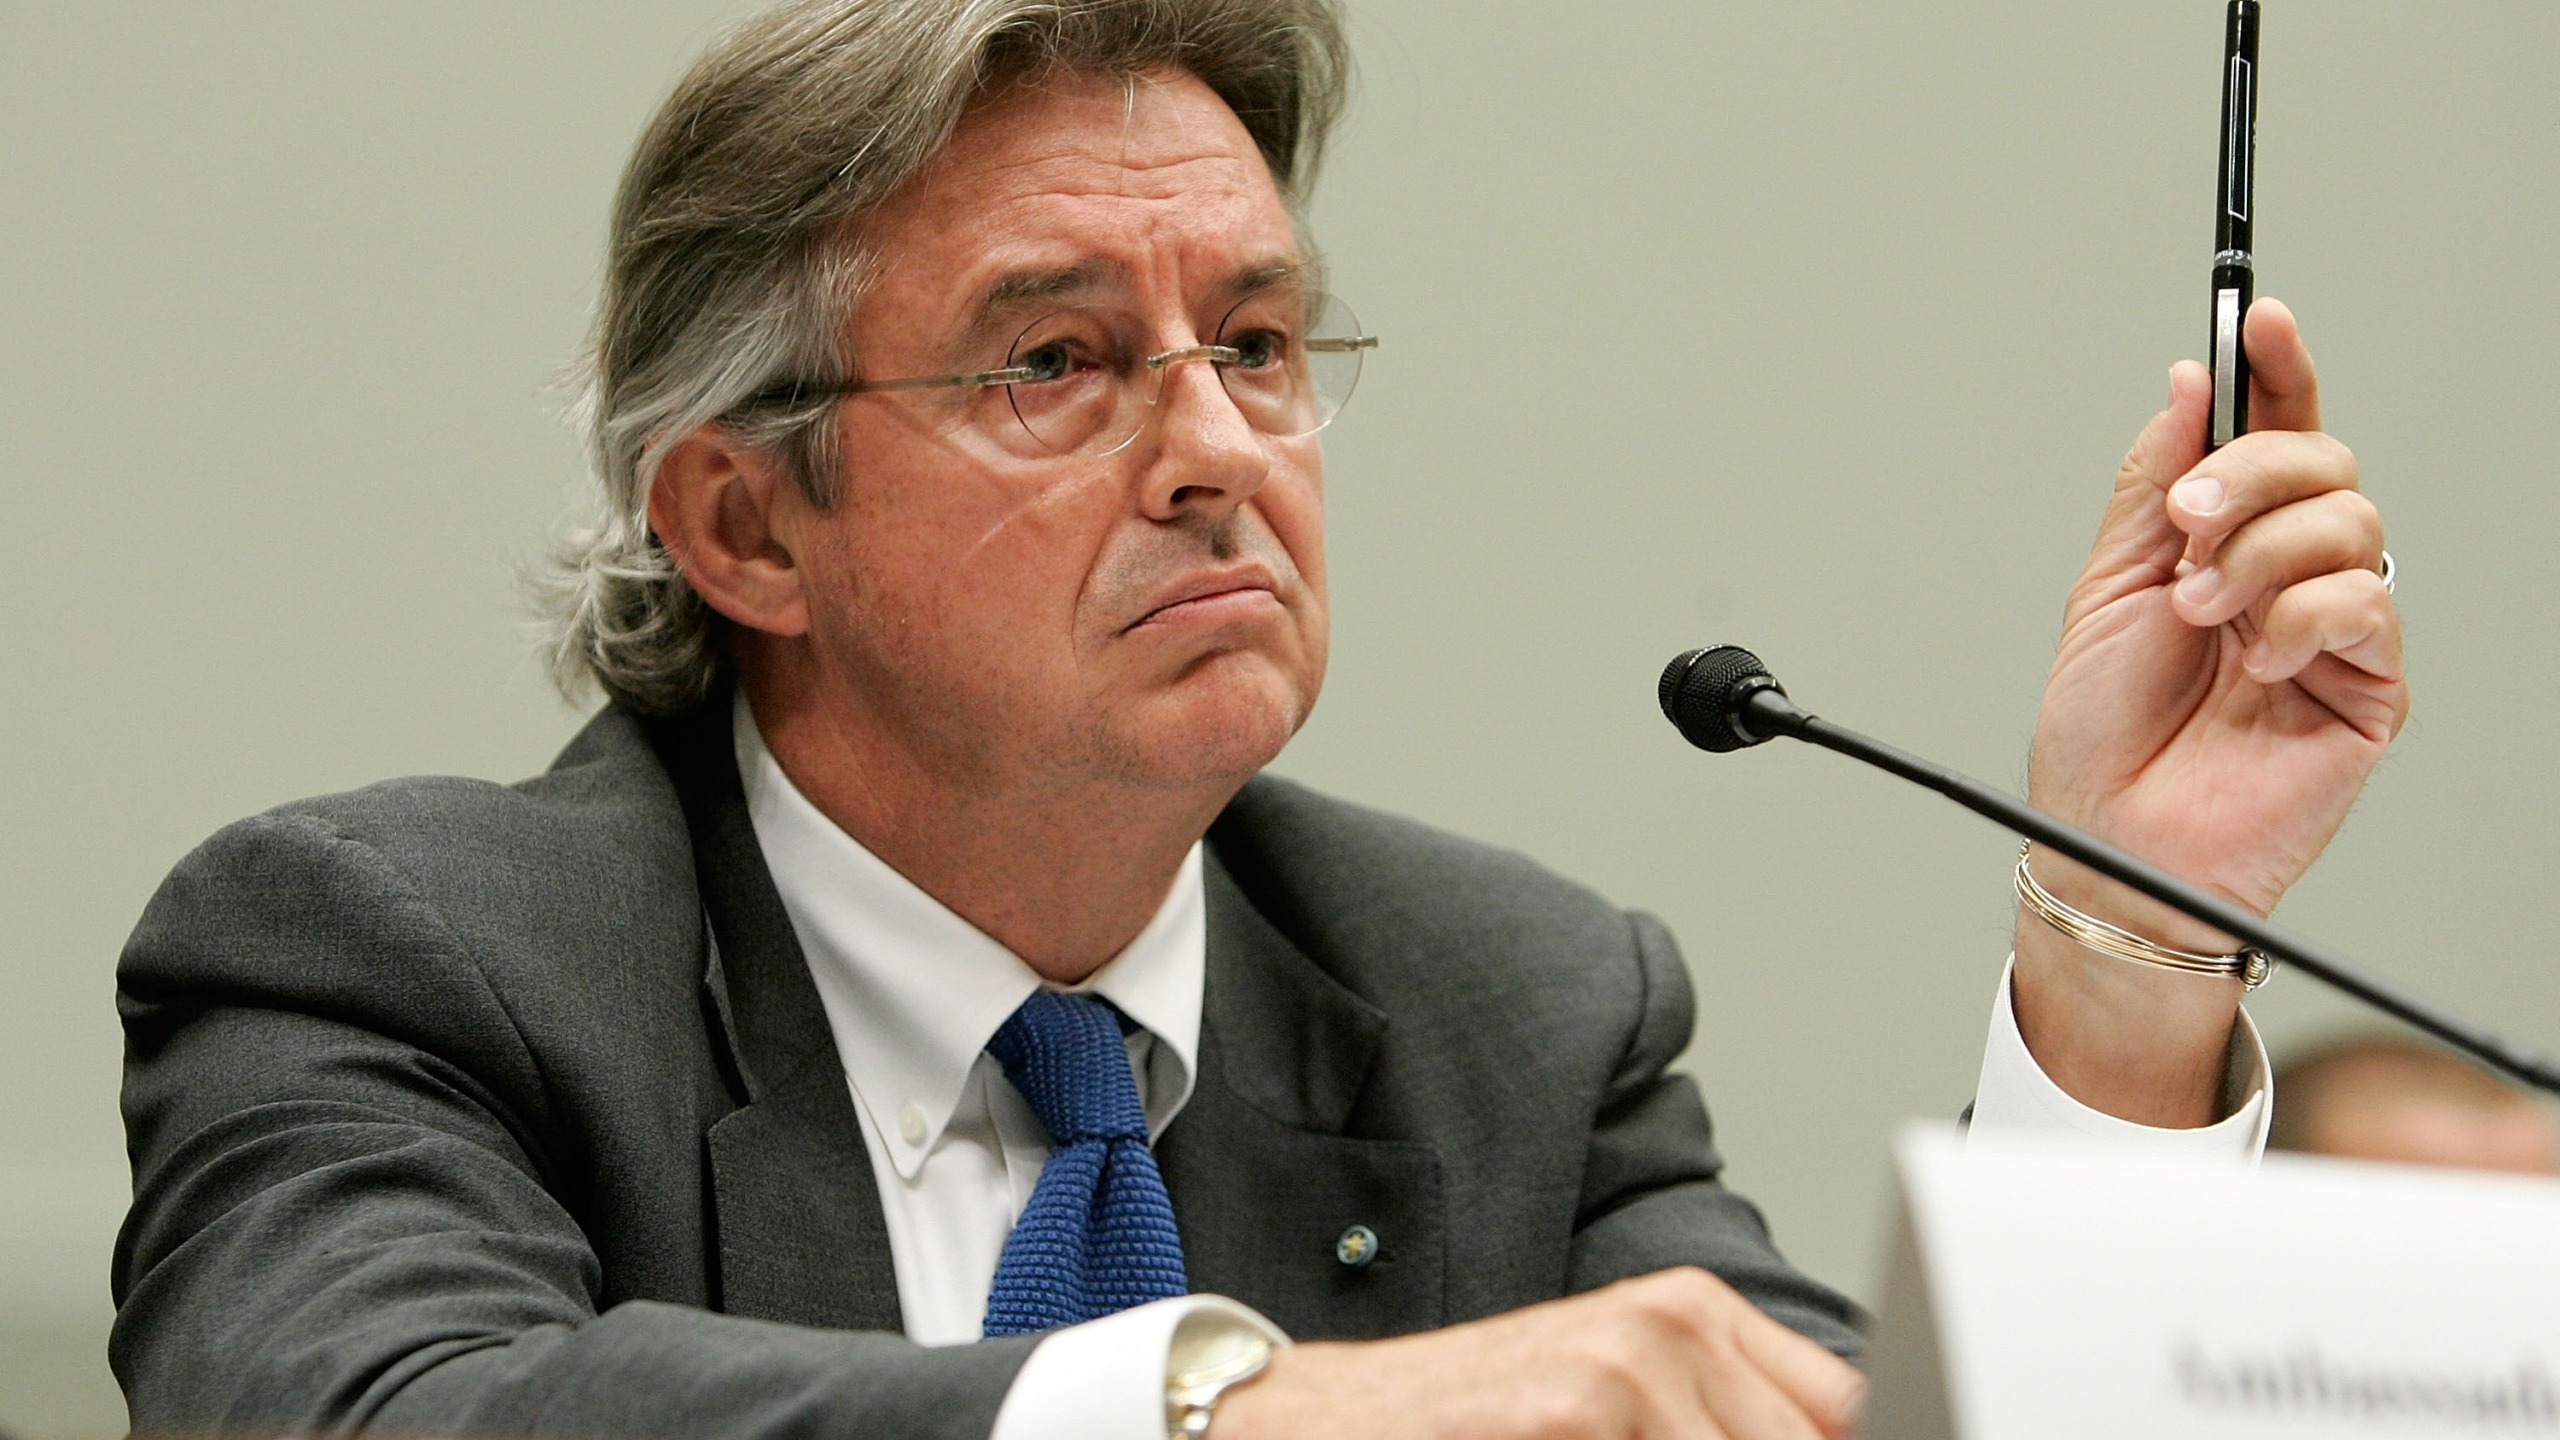 Former Ambassador Joseph Wilson testifies during a hearing before the House Judiciary Committee on July 11, 2007, in Washington, DC. (Credit: Alex Wong/Getty Images)